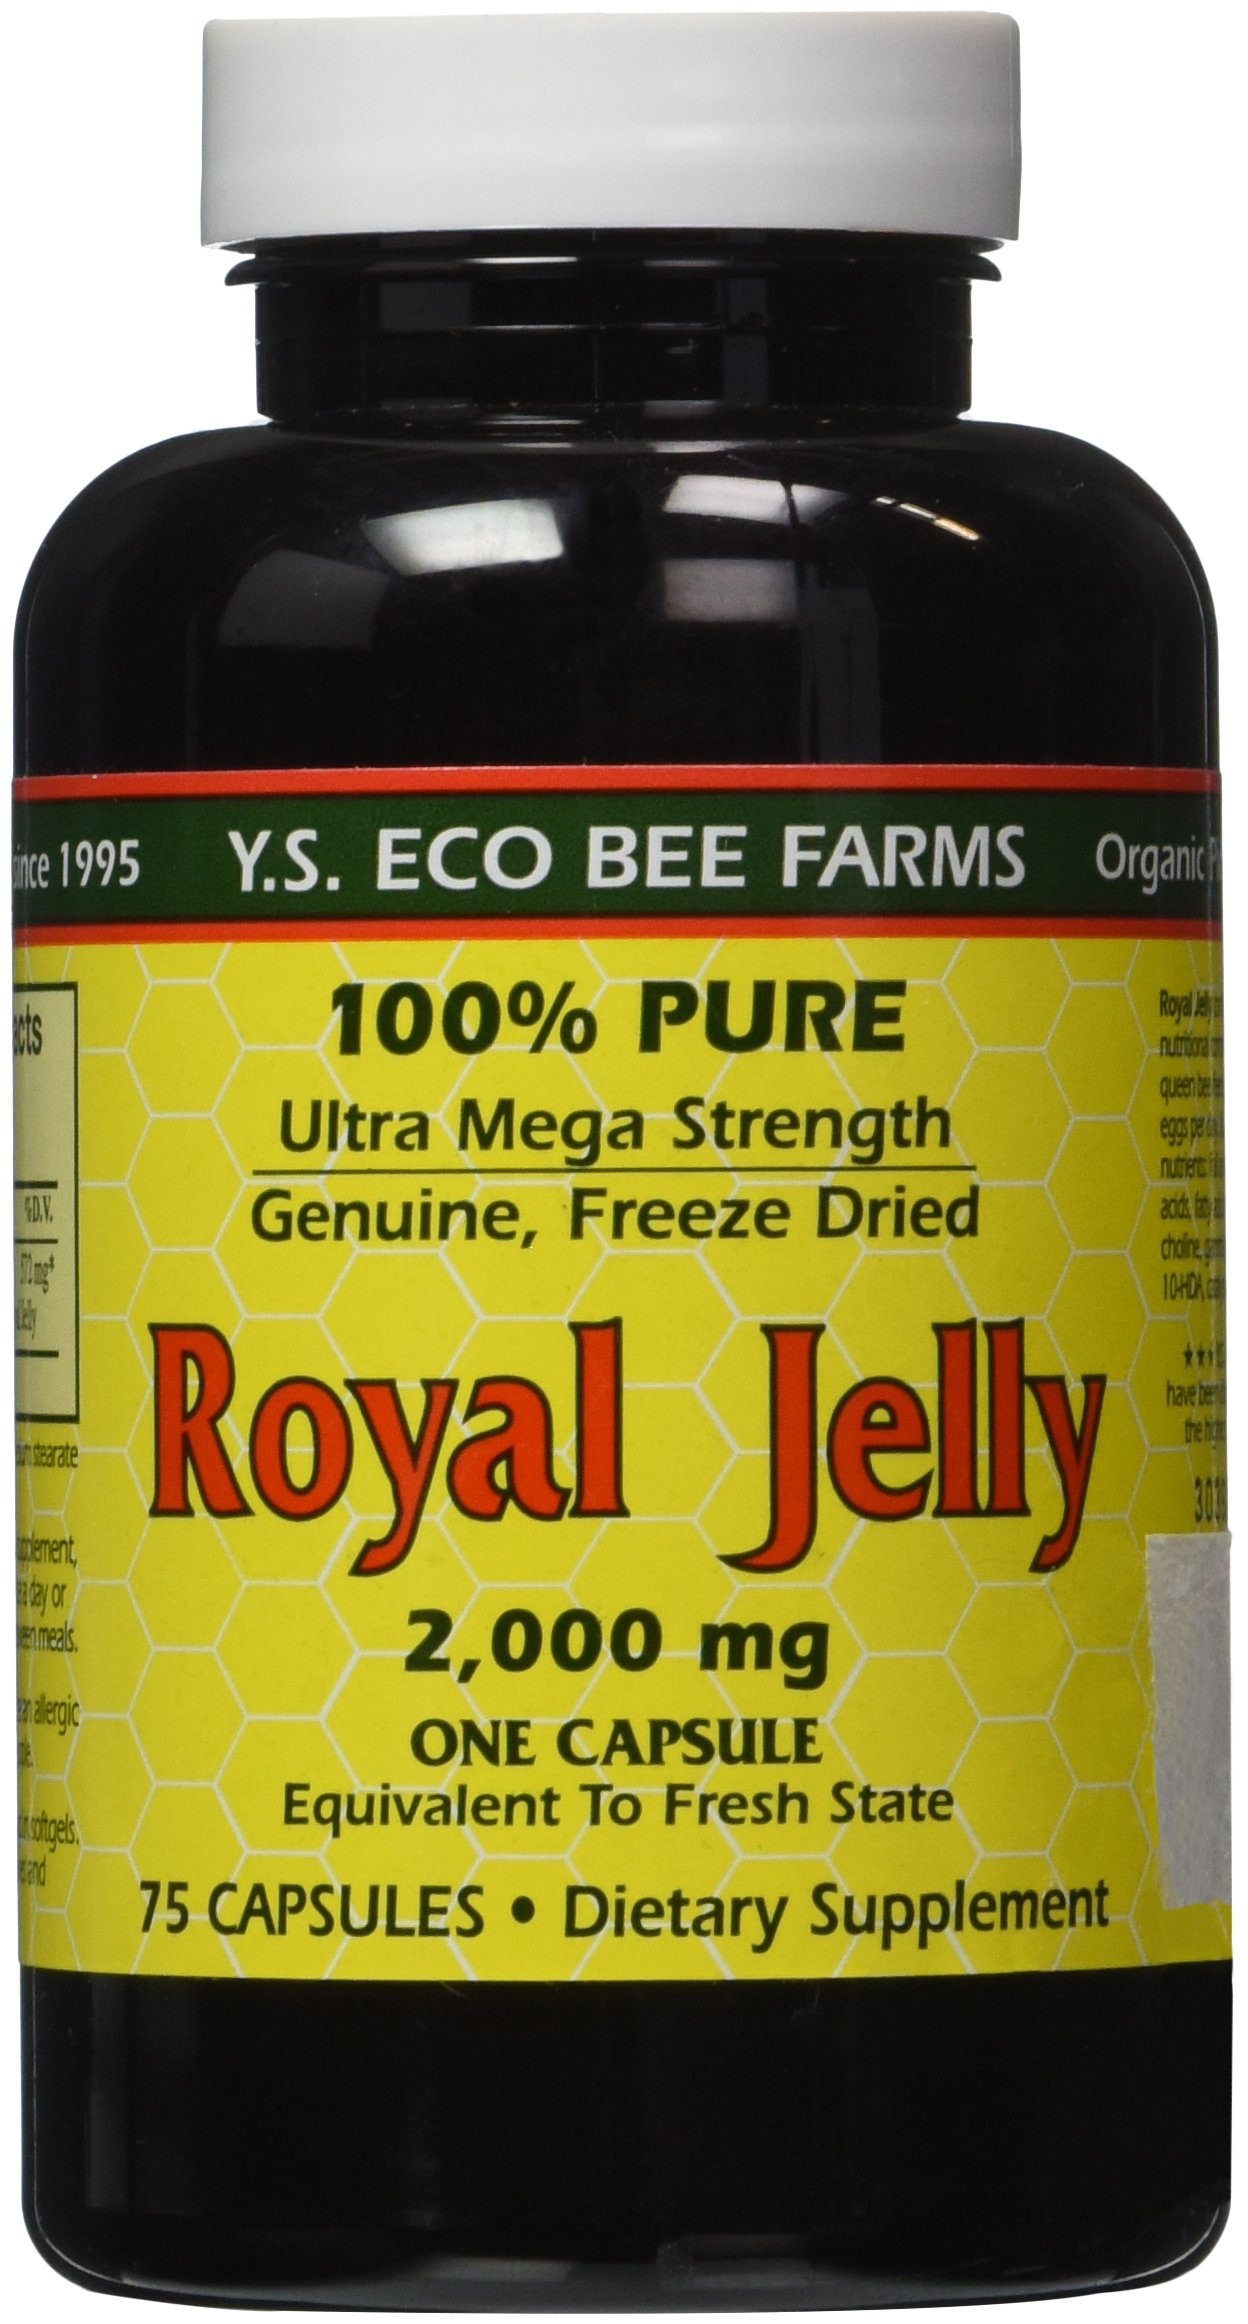 100% Pure Freeze Dried Fresh Royal Jelly - 2000 mg YS Eco Bee Farms 75 Caps